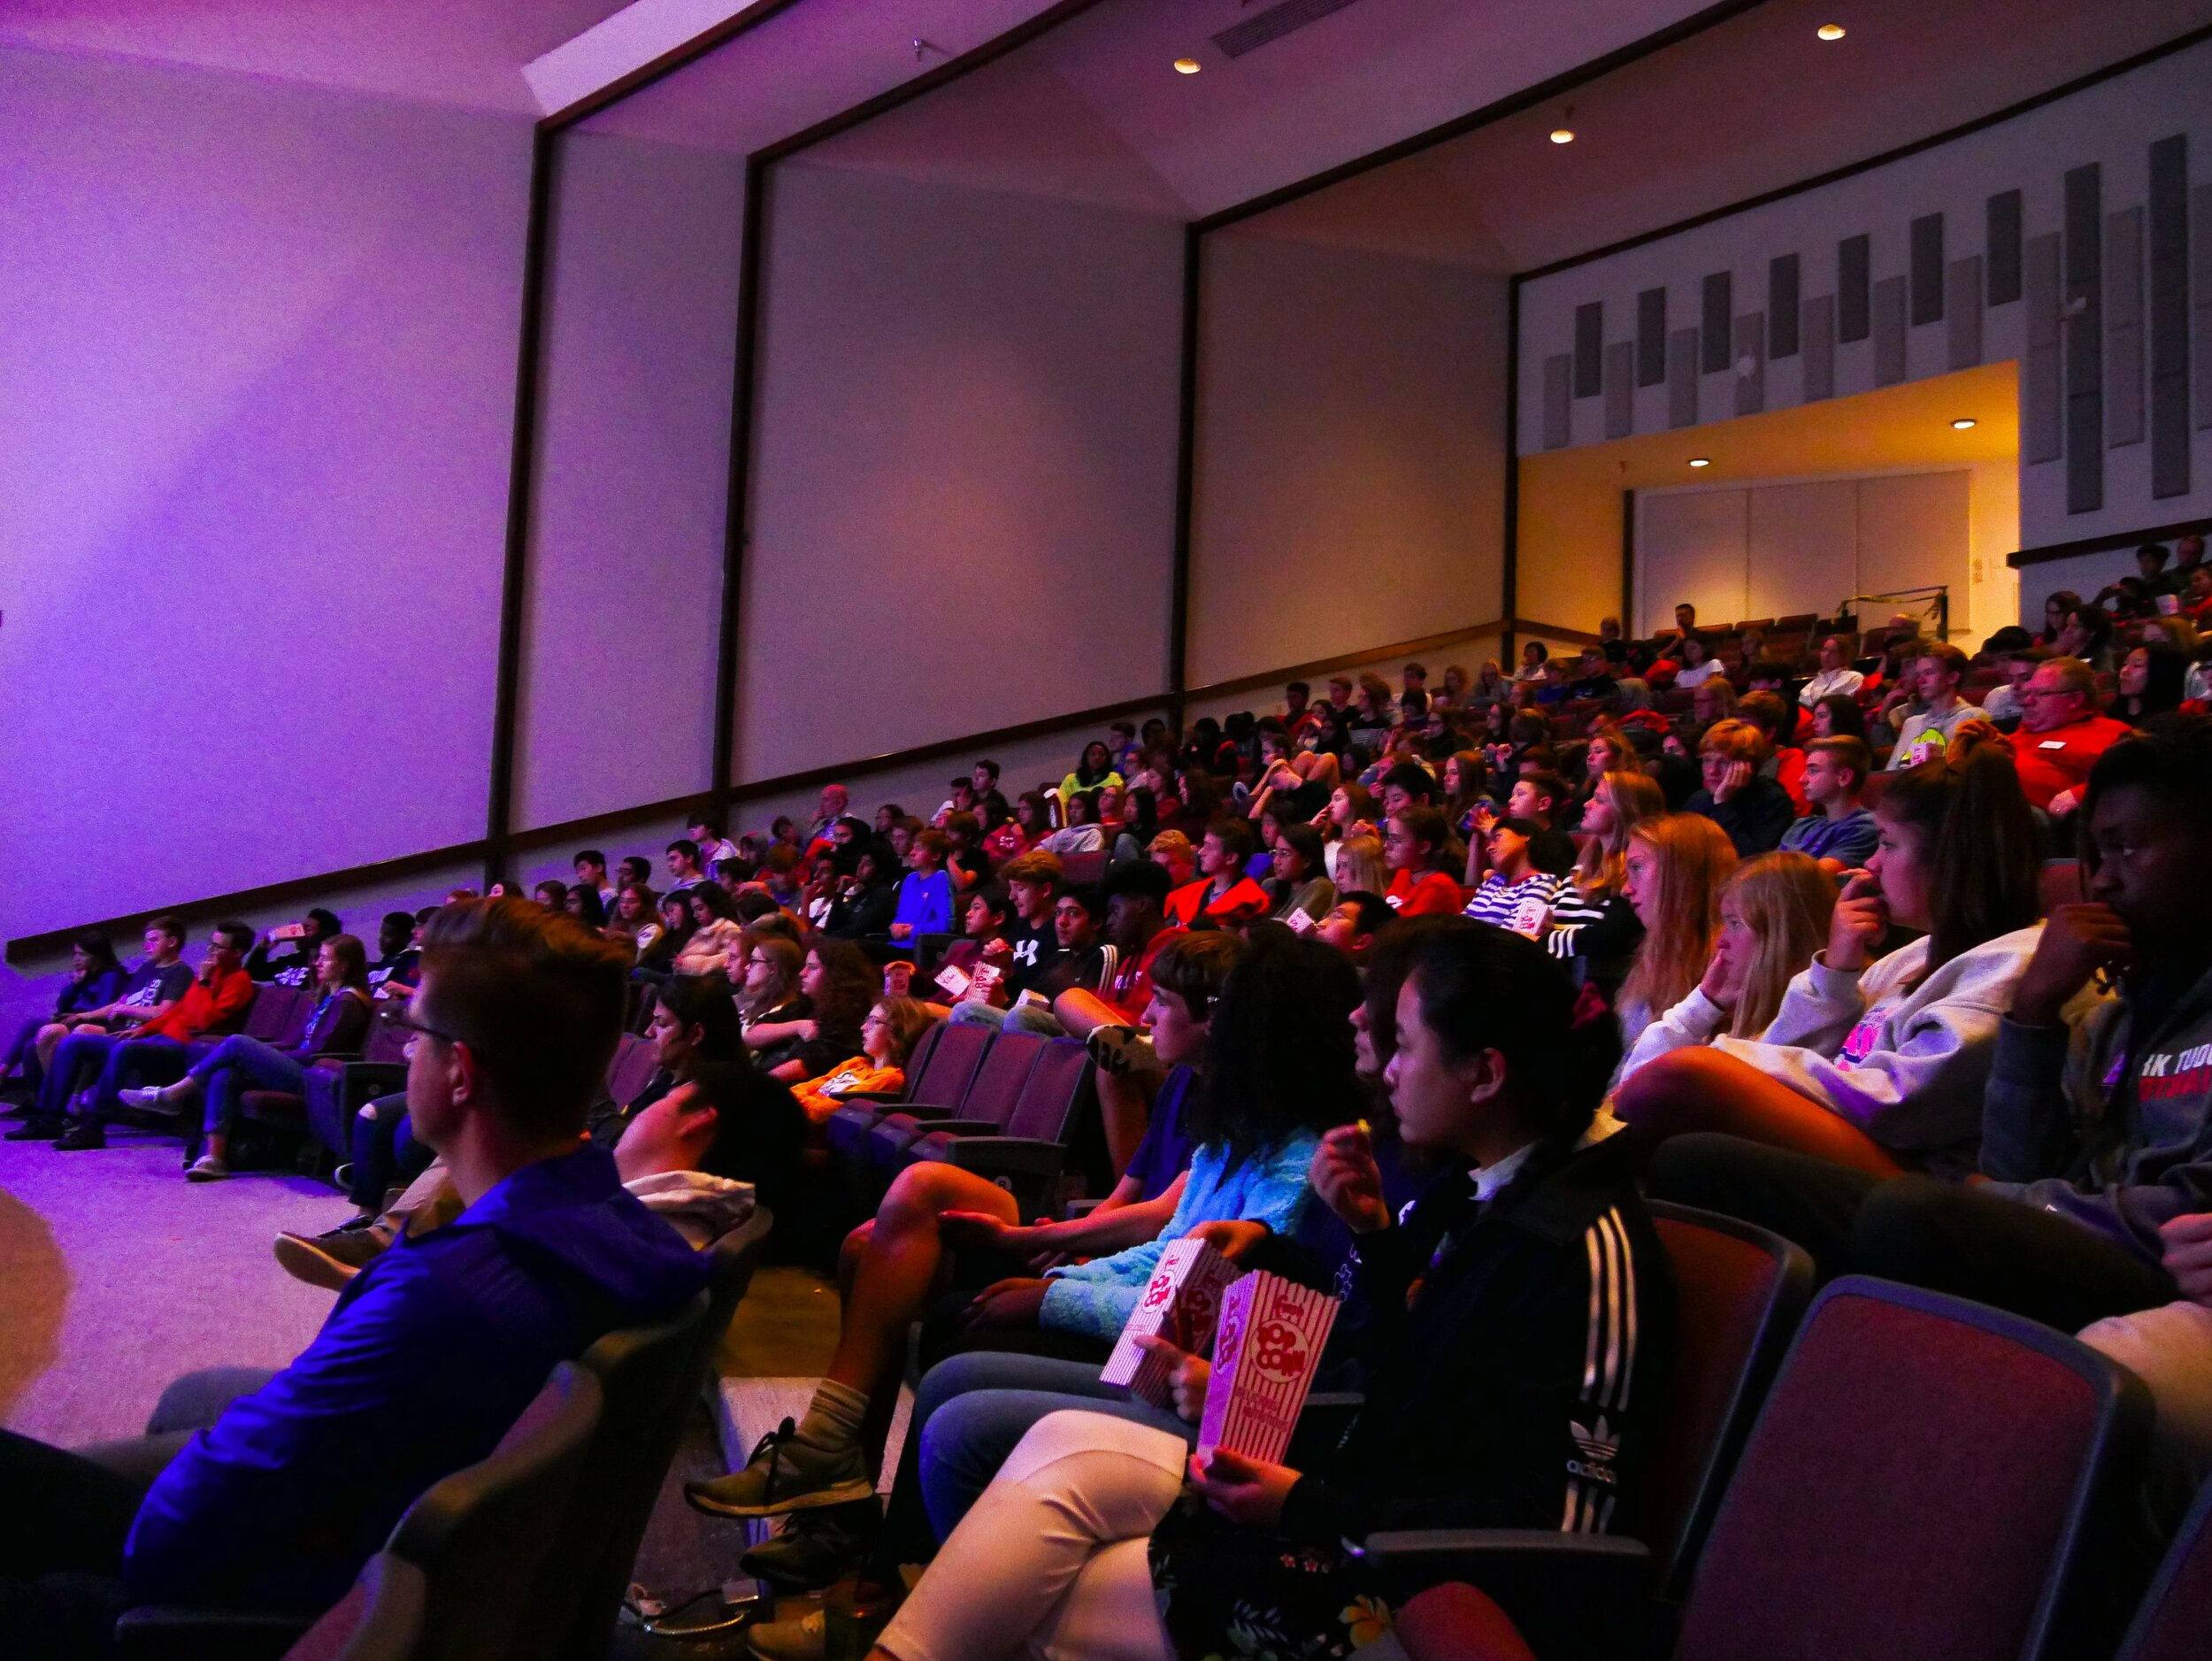 Park Tudor students and faculty watch filmmaker Julie Sokolow present Barefoot: The Mark Baumer Story. Photo by Park Tudor School.